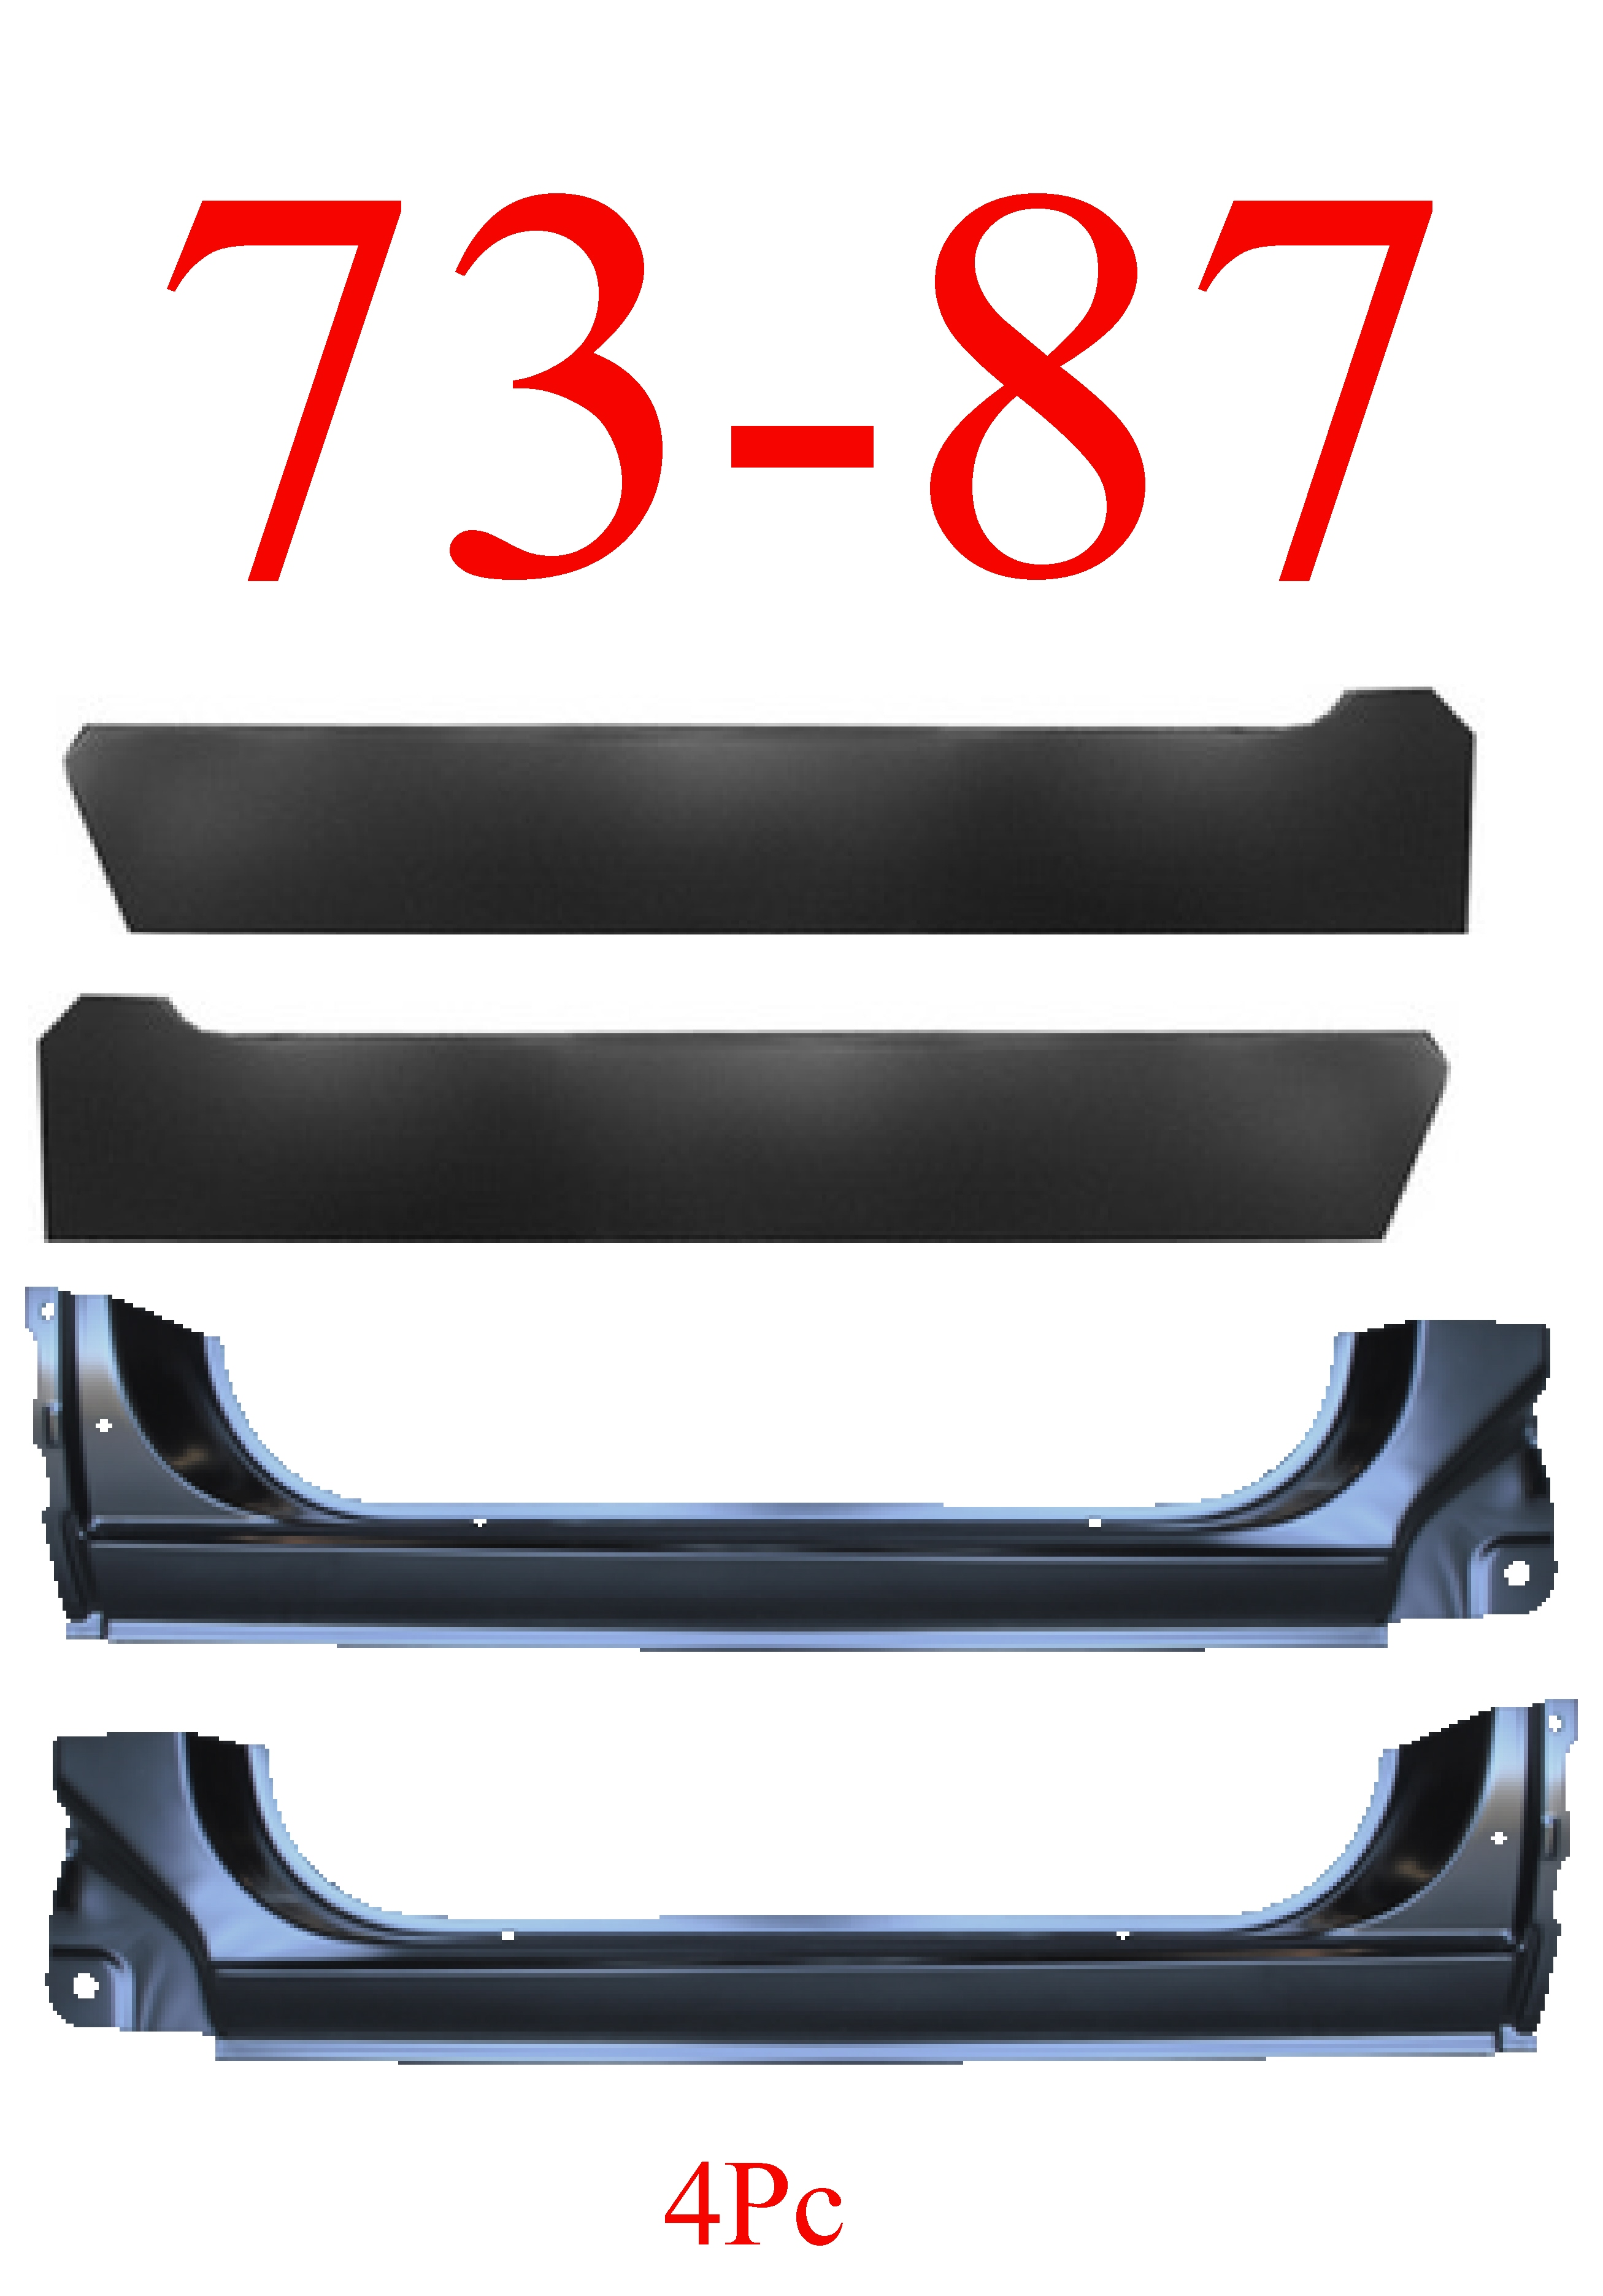 73-87 Chevy 4Pc Extended Rocker Panel & Inner